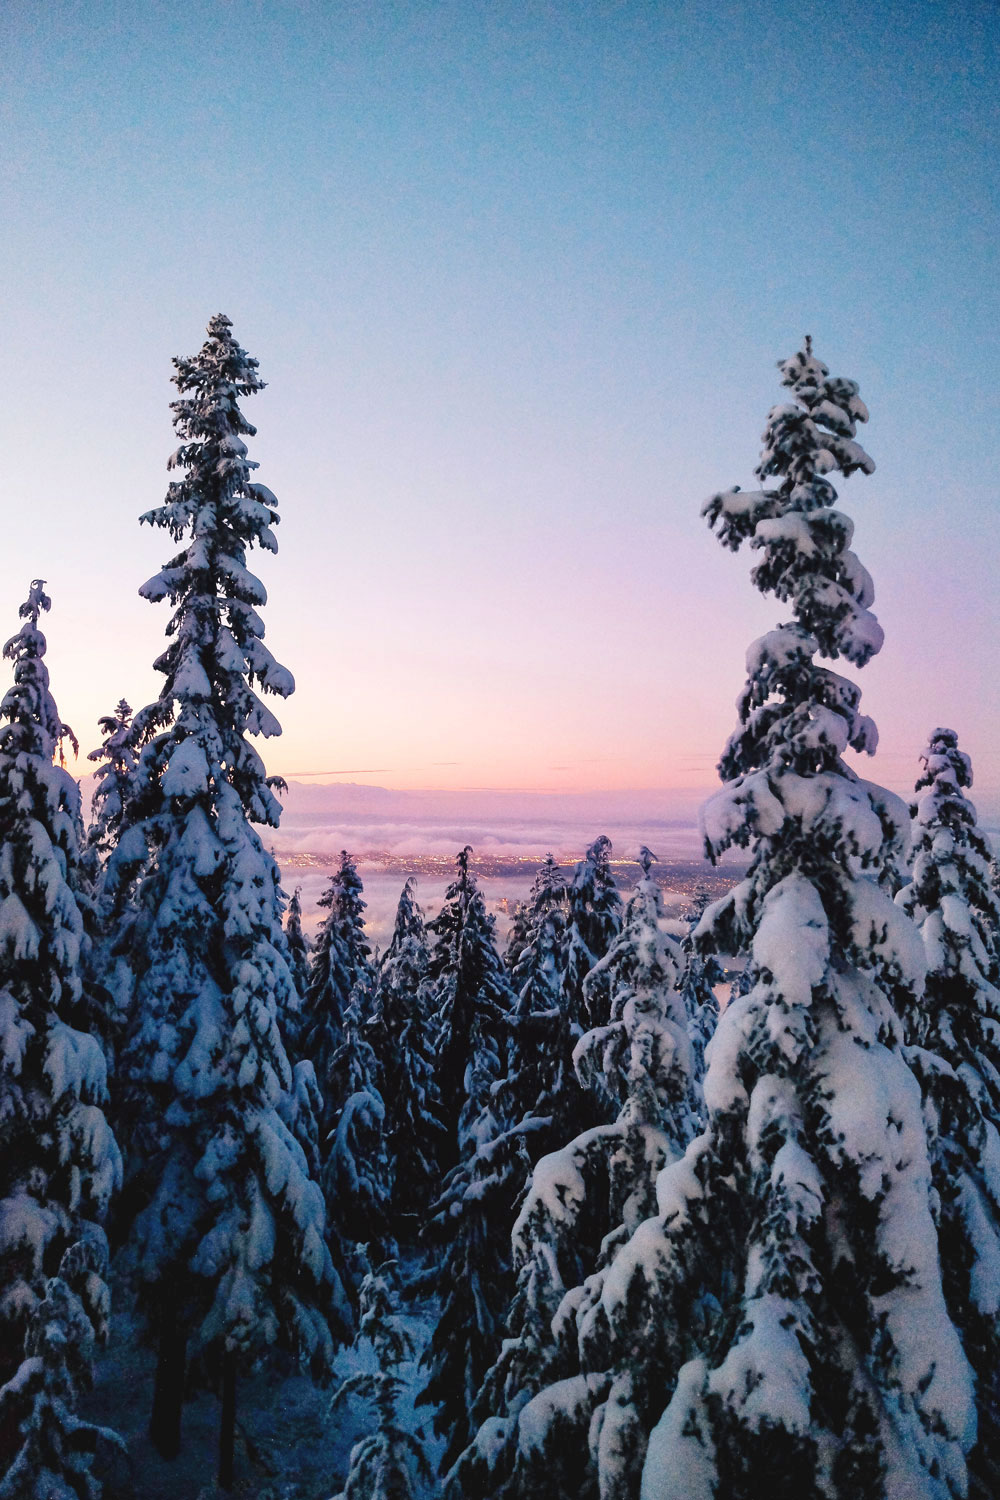 Things to do in Vancouver at Christmas - Grouse Mountain Peak of Christmas ice skating, snowshoeing and skiing